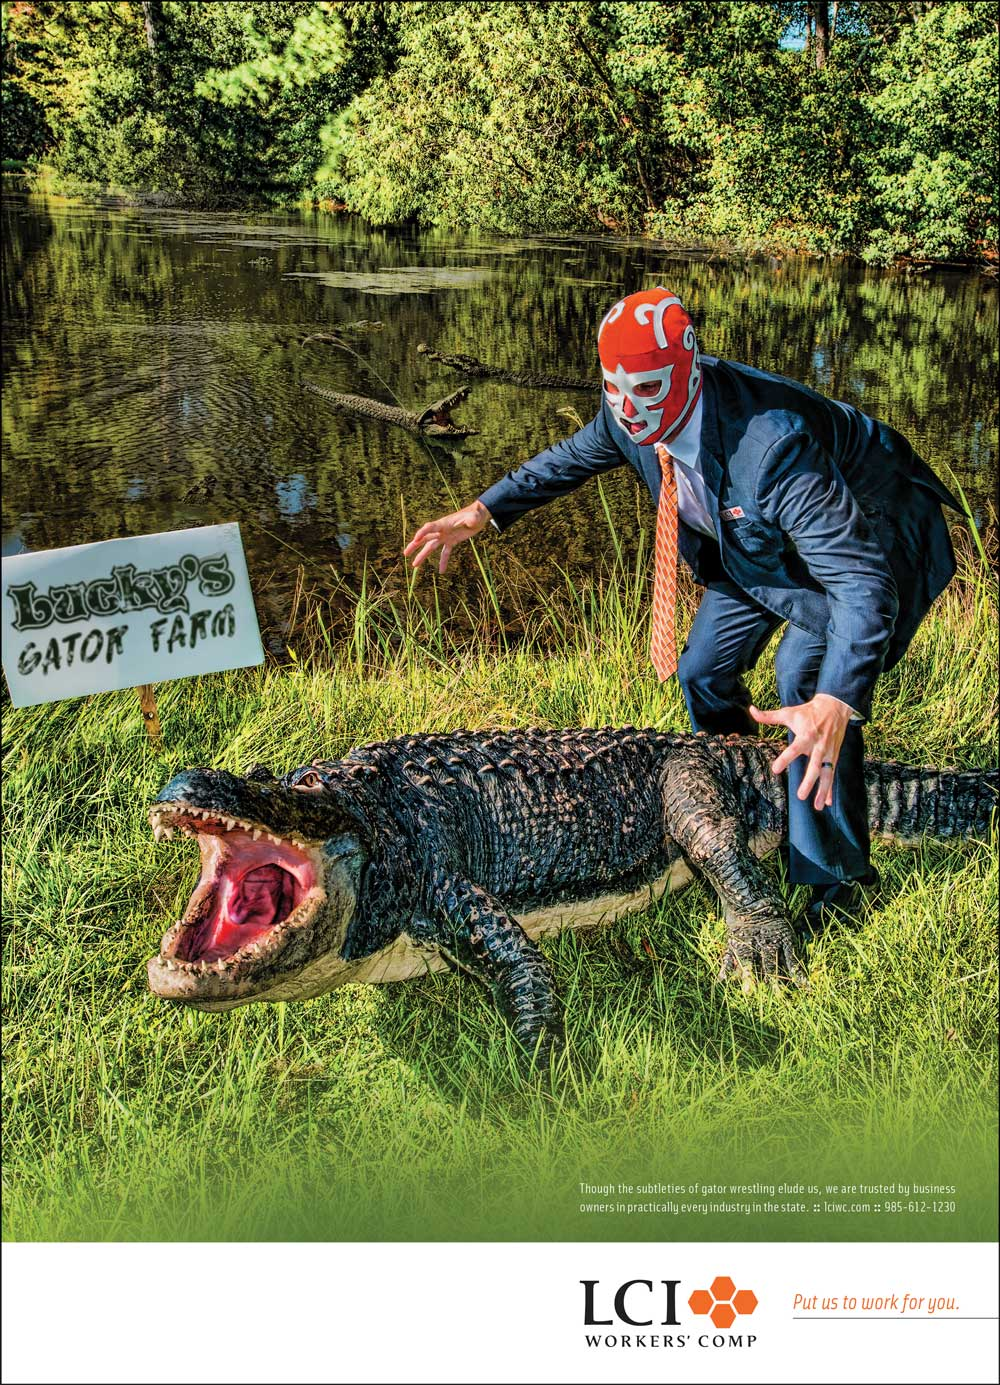 LCI Gator Farm Ad Put Us To Work For You campaign